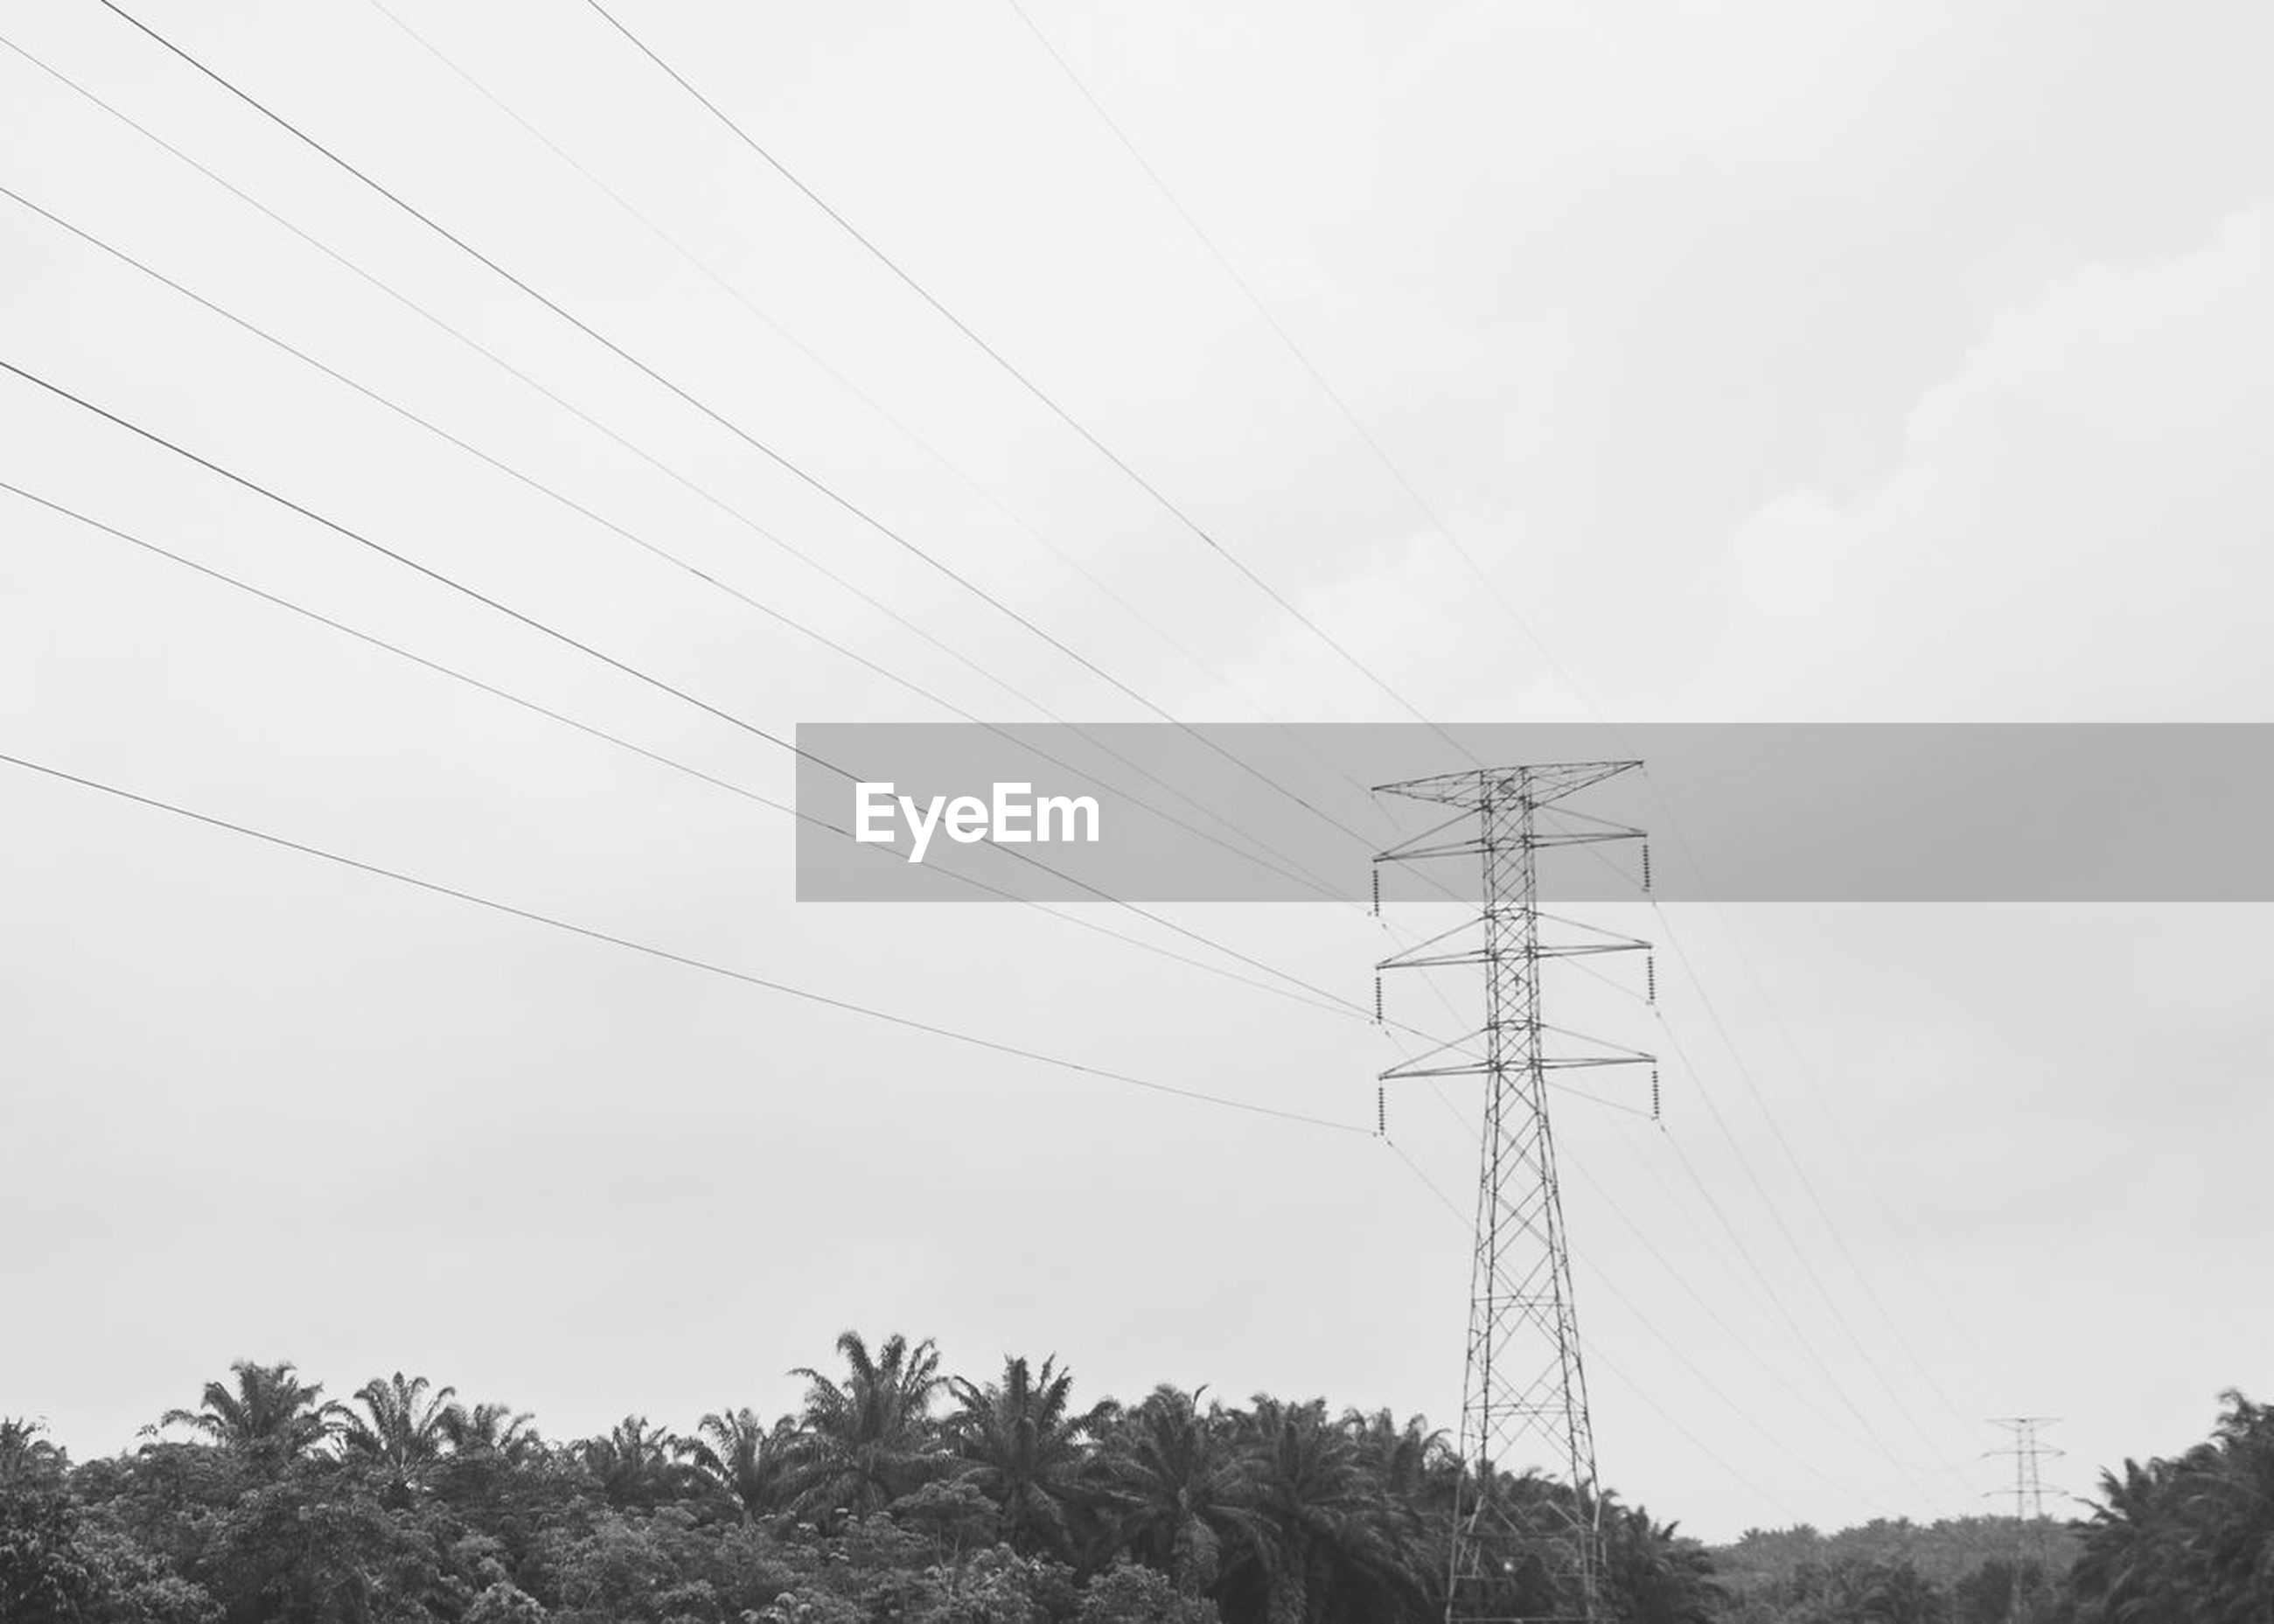 cable, connection, electricity, electricity pylon, power supply, power line, fuel and power generation, low angle view, technology, day, electricity tower, sky, outdoors, no people, tree, nature